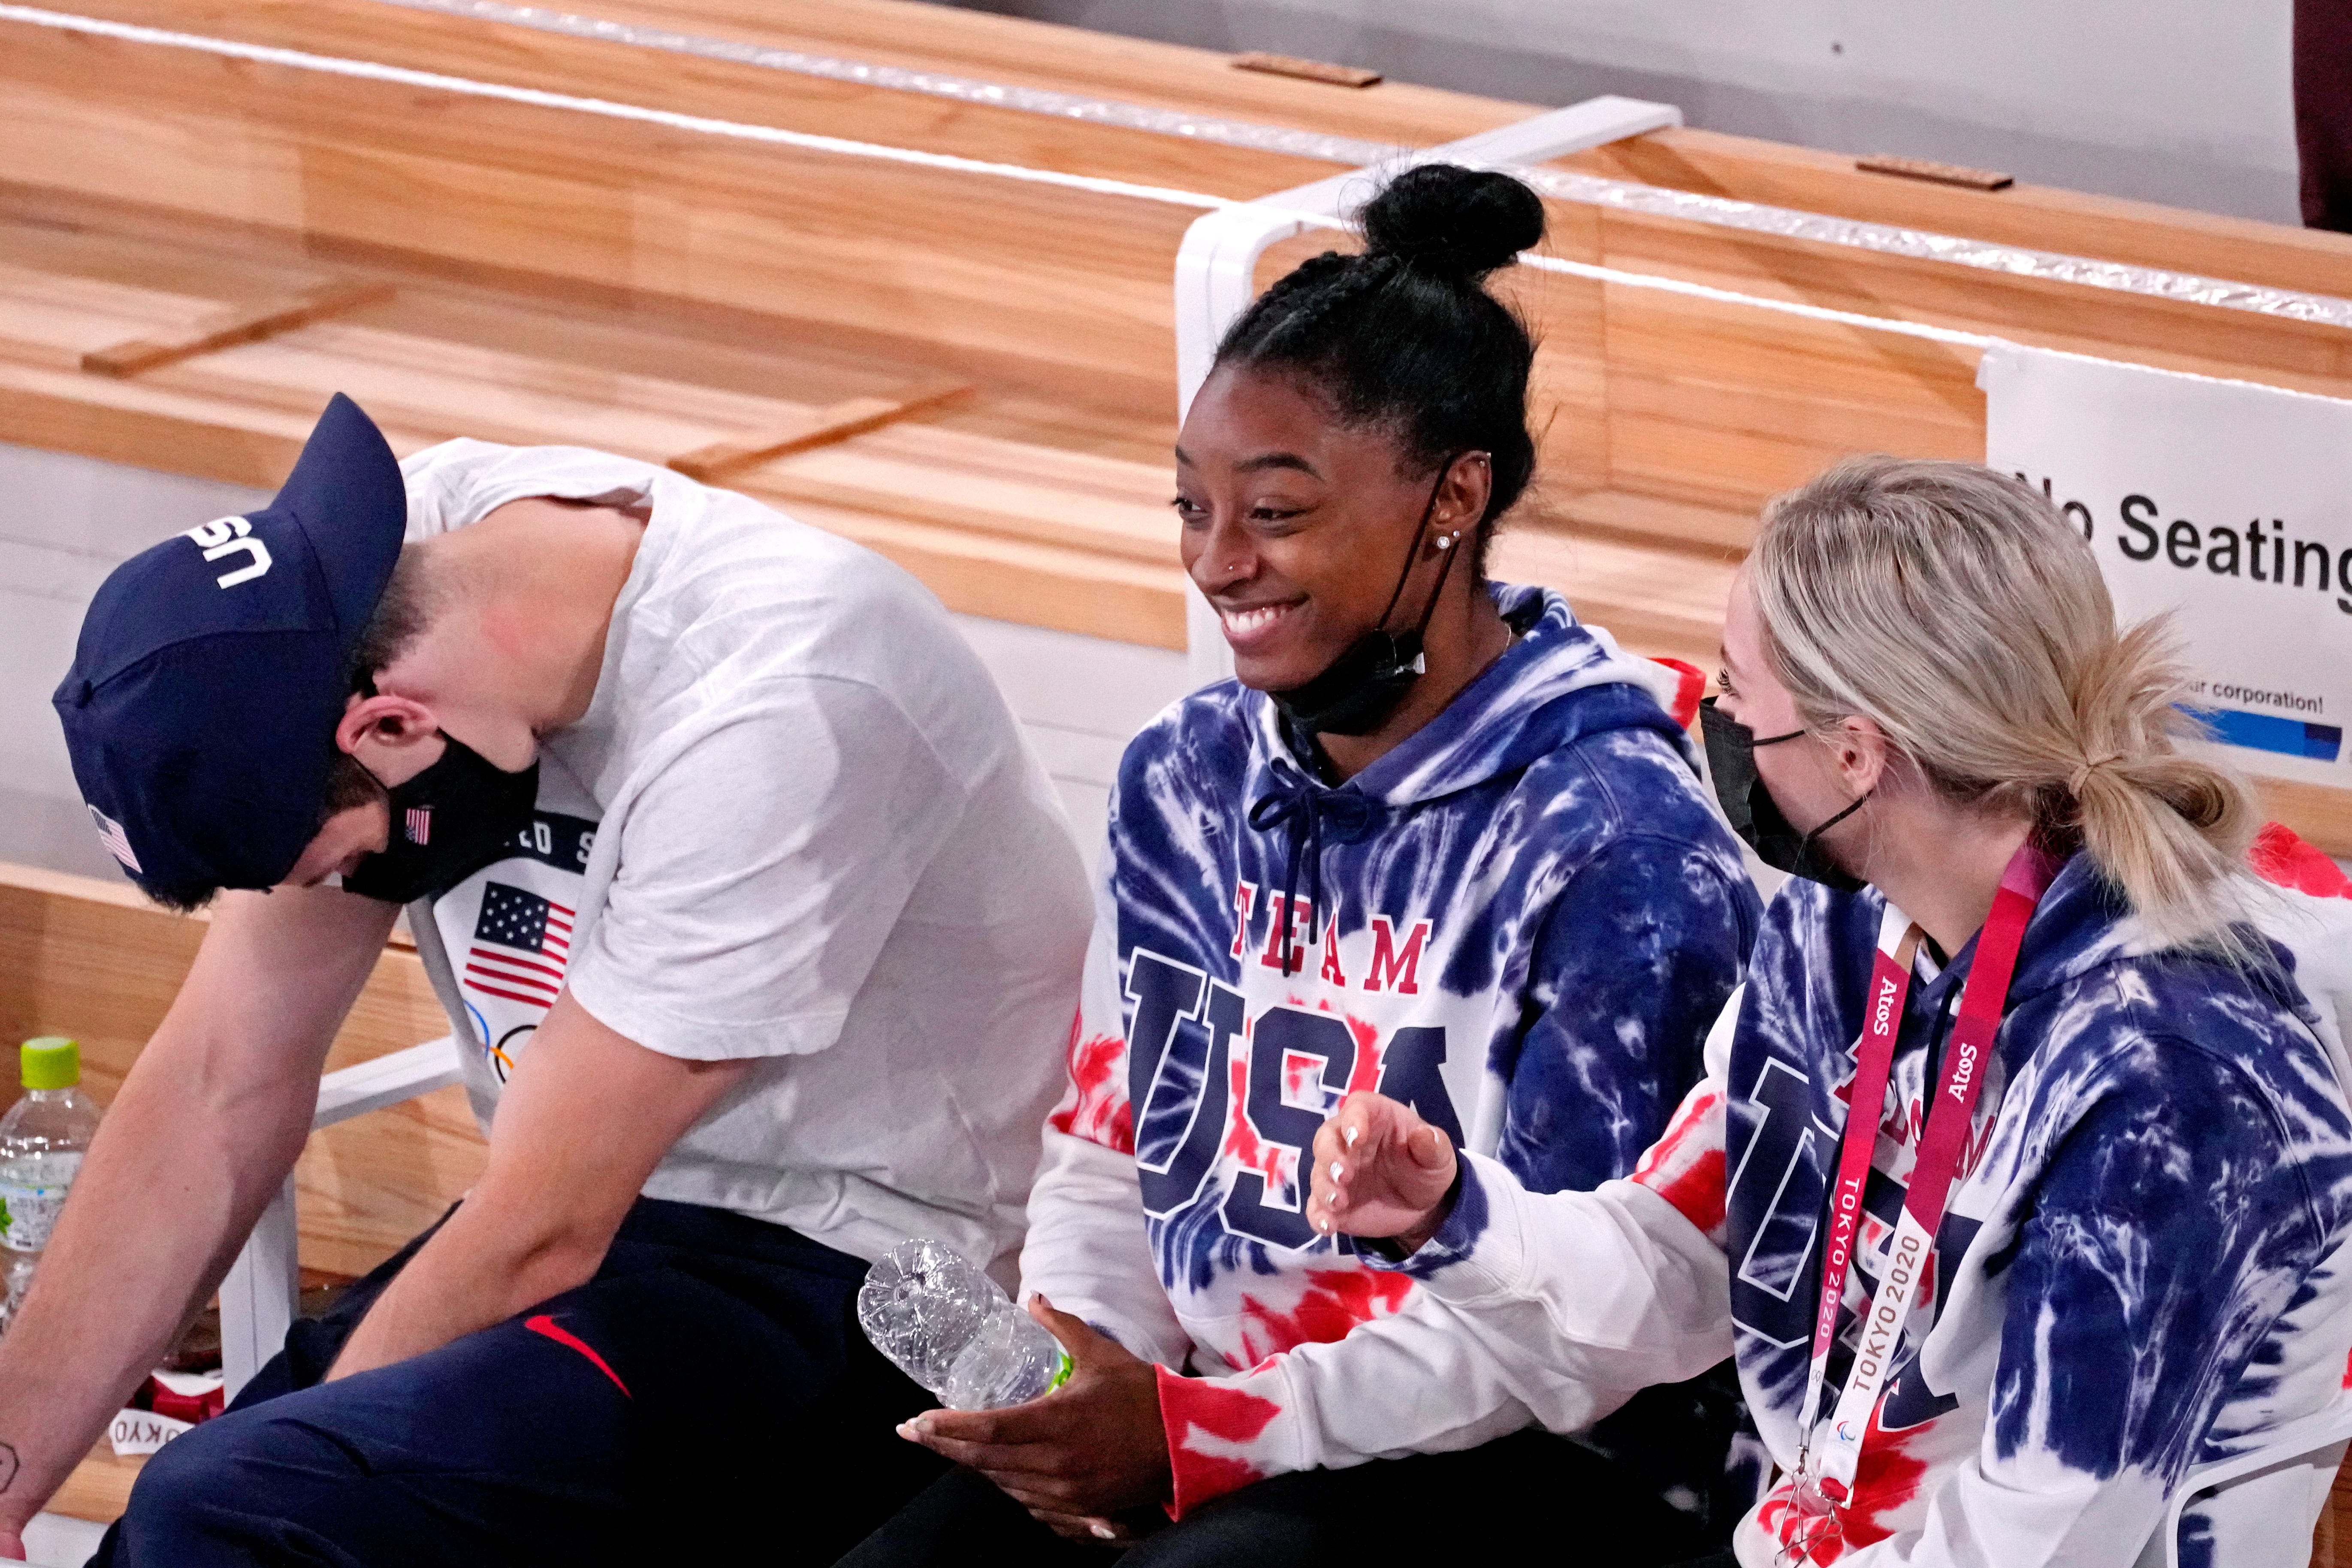 Simone Biles withdraws from floor exercise final at Olympics; status for balance beam unclear